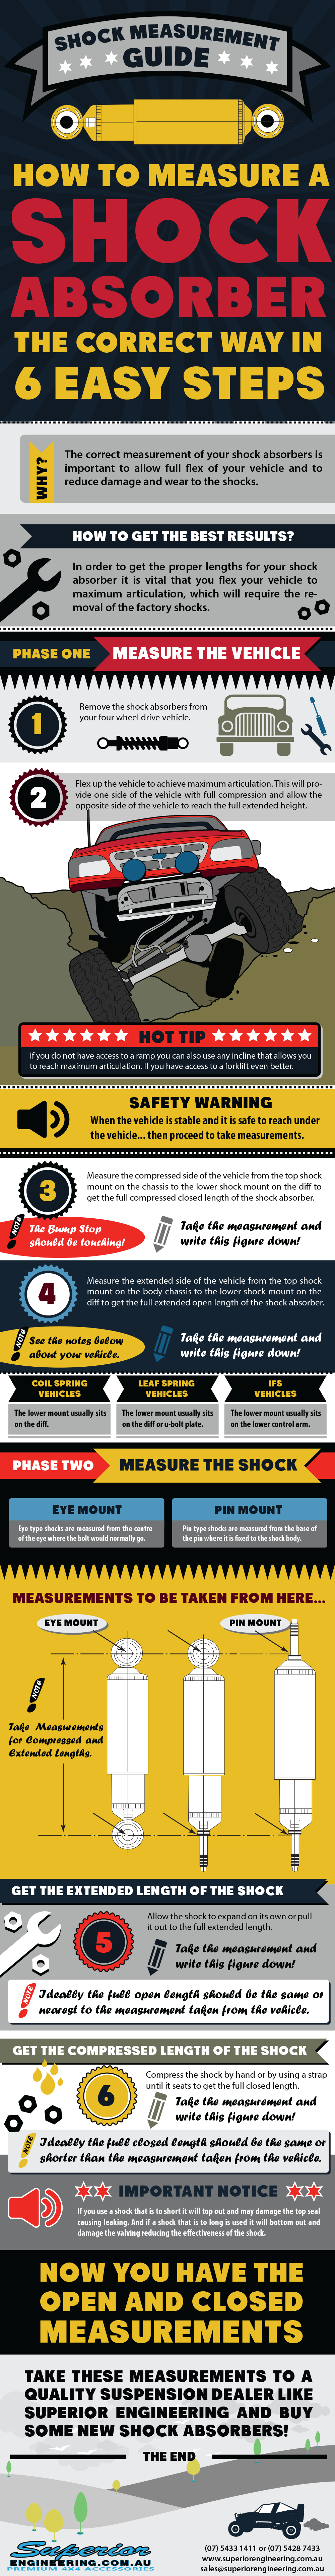 How to Measure a Shock Absorber | Superior Engineering